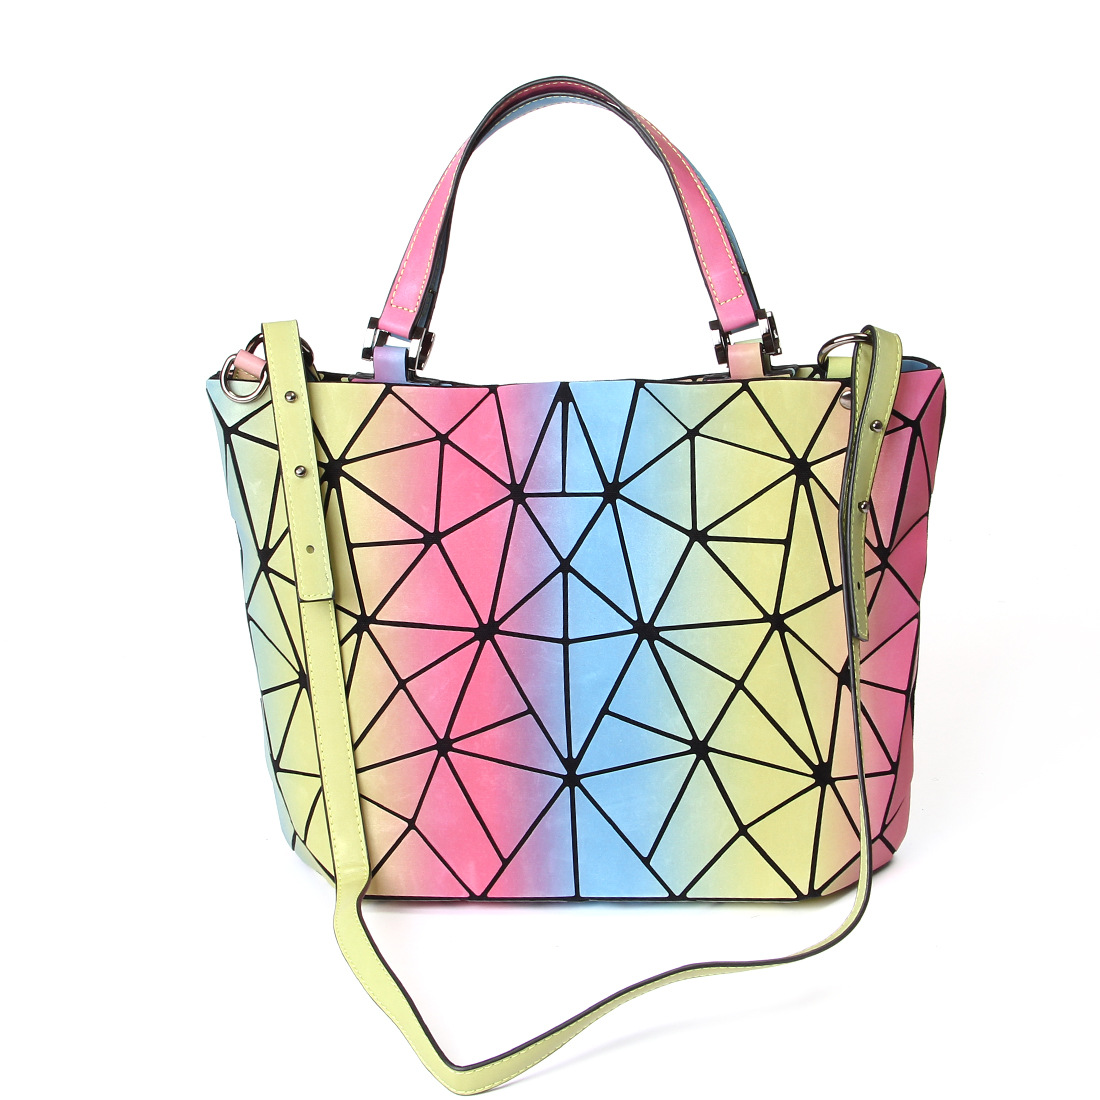 Ms3134 Fashion New Style Women's Hand Quilted Rainbow Folding Flexible Toth Shoulder Bag(China)